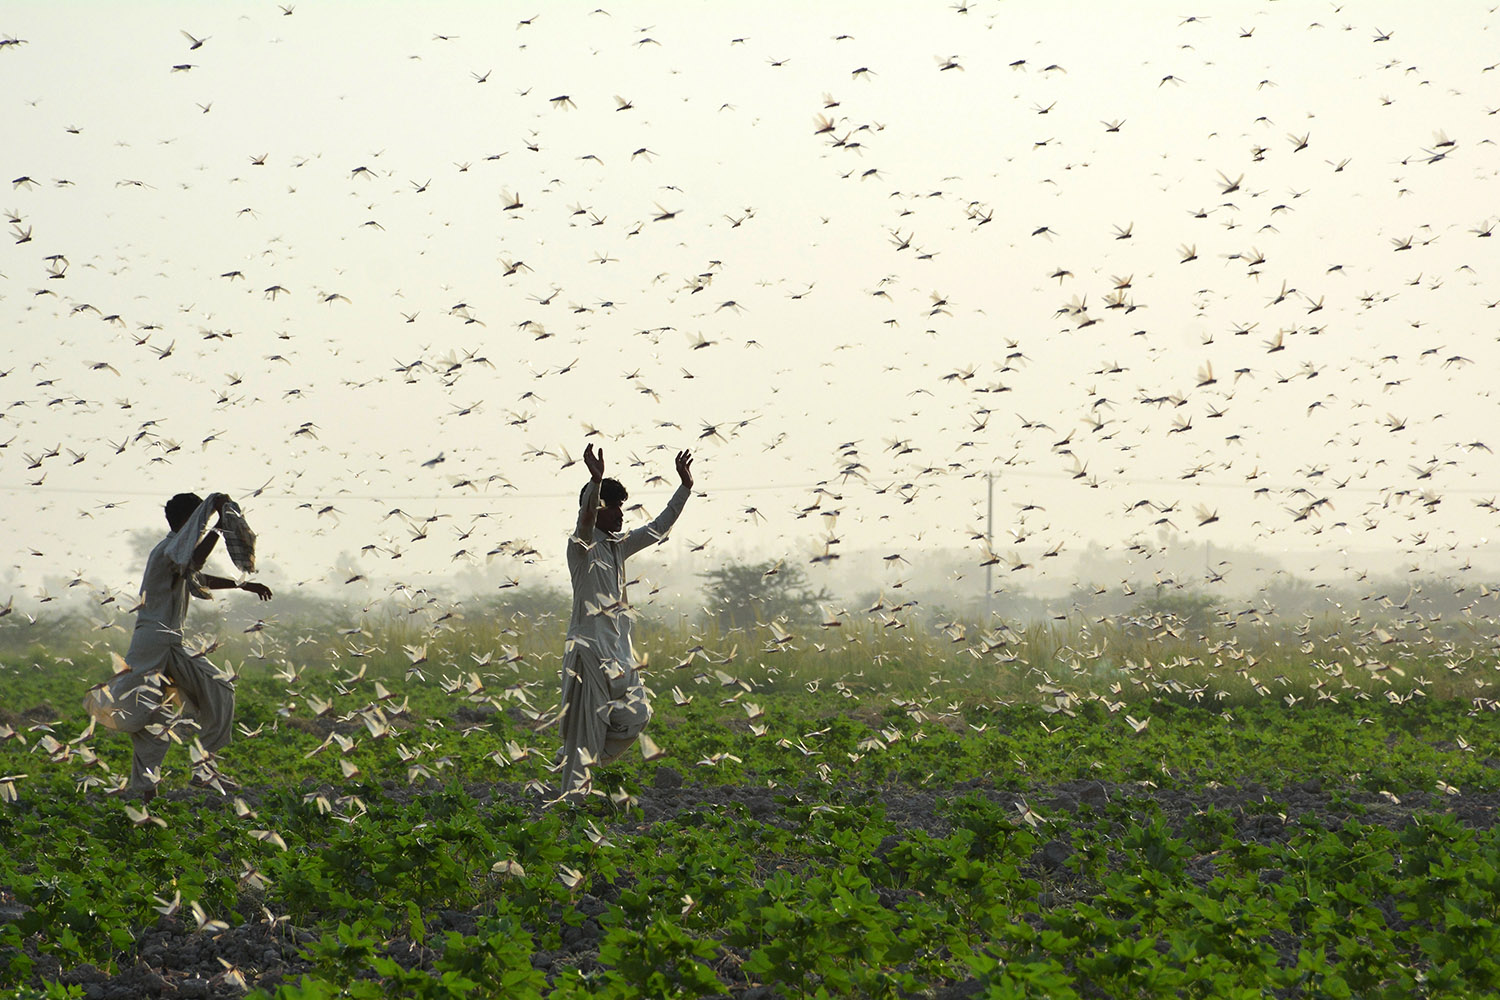 Farmers try to scare away a swarm of locusts from a field on the outskirts of Sukkur, Pakistan, on July 1. SHAHID ALI/AFP via Getty Images